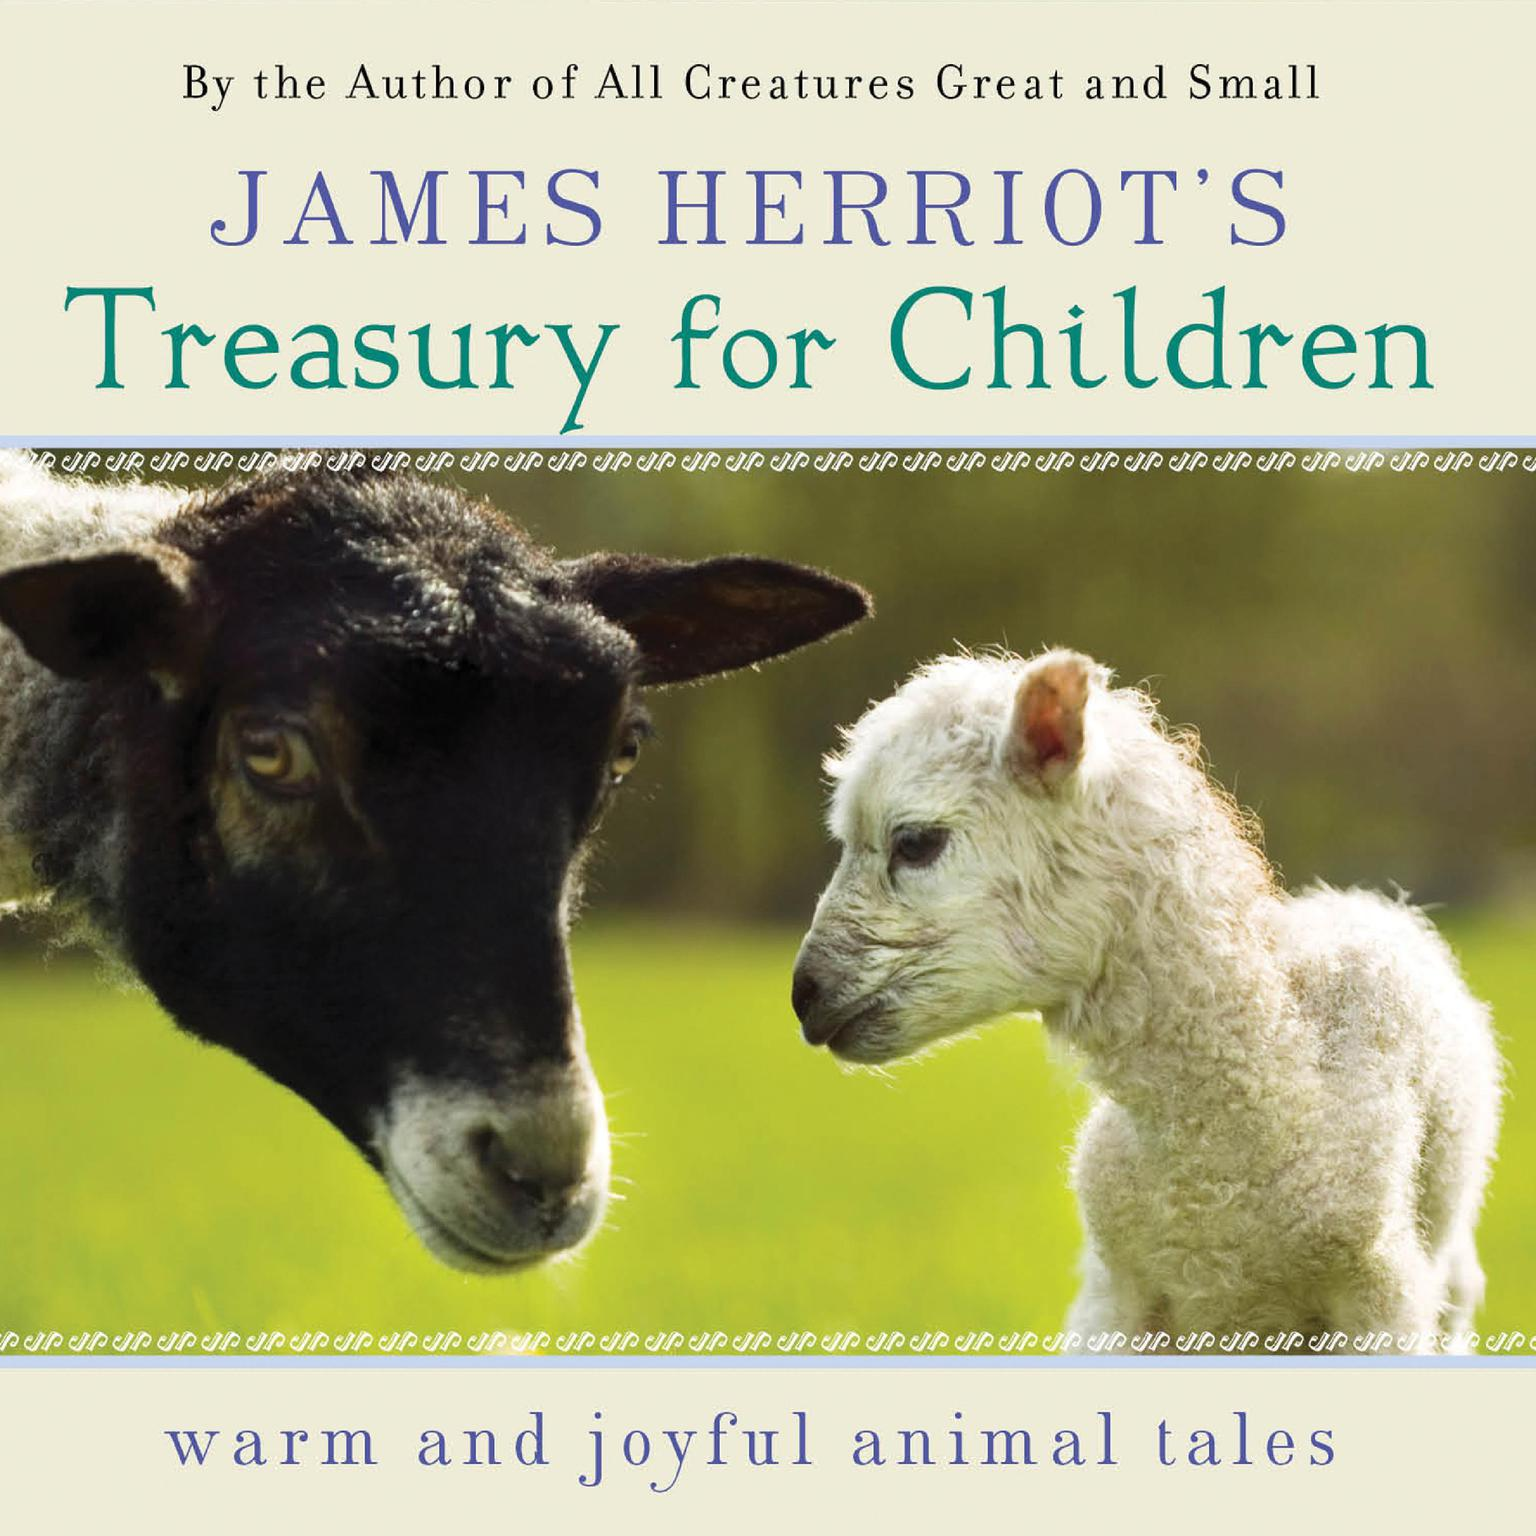 Printable James Herriot's Treasury for Children: Warm and Joyful Tales by the Author of All Creatures Great and Small Audiobook Cover Art